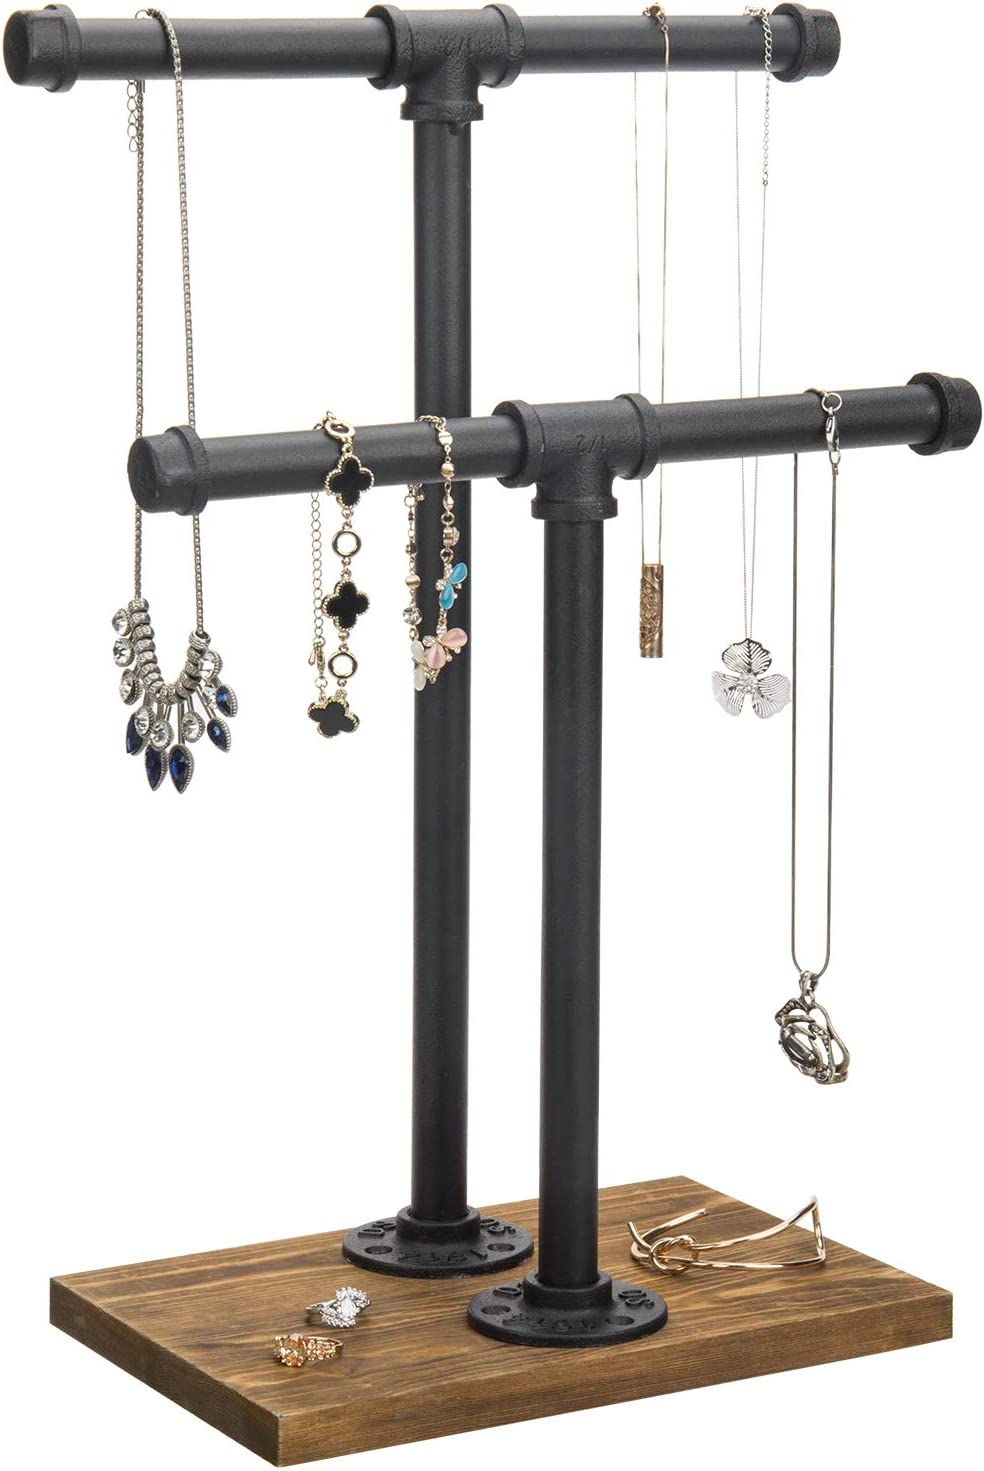 MyGift 2-Tier Urban Rustic Metal Industrial Pipe & Brown Wood T-Bar Necklace Jewelry Stand